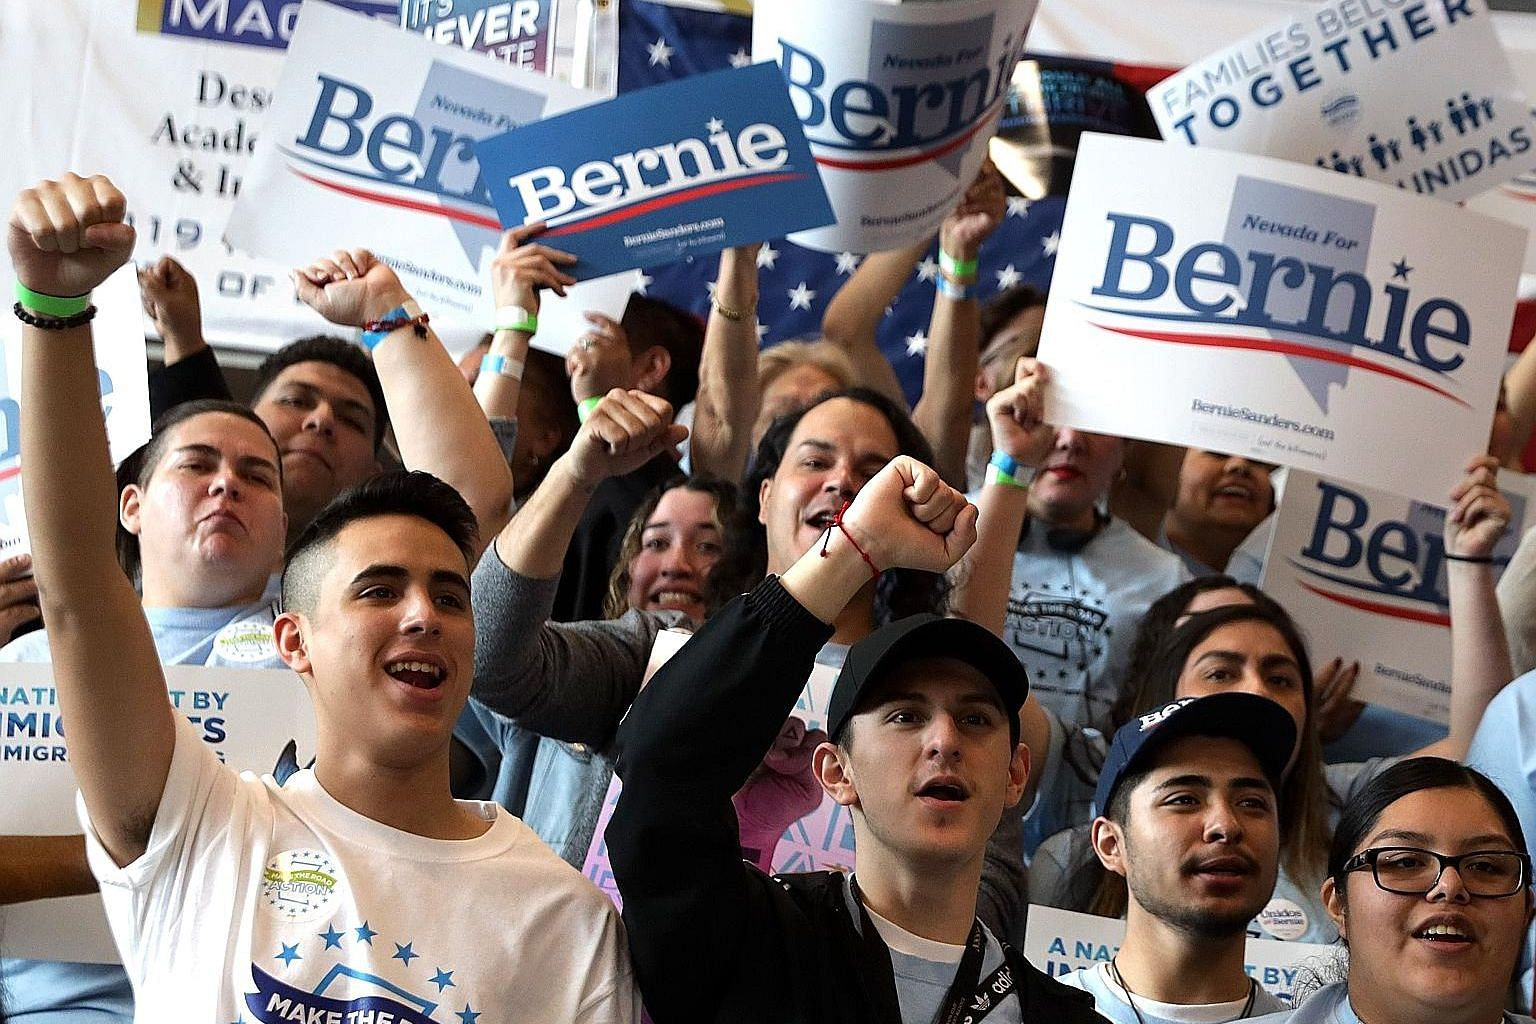 Supporters cheering for Senator Bernie Sanders during a rally at a high school in Las Vegas on Saturday.